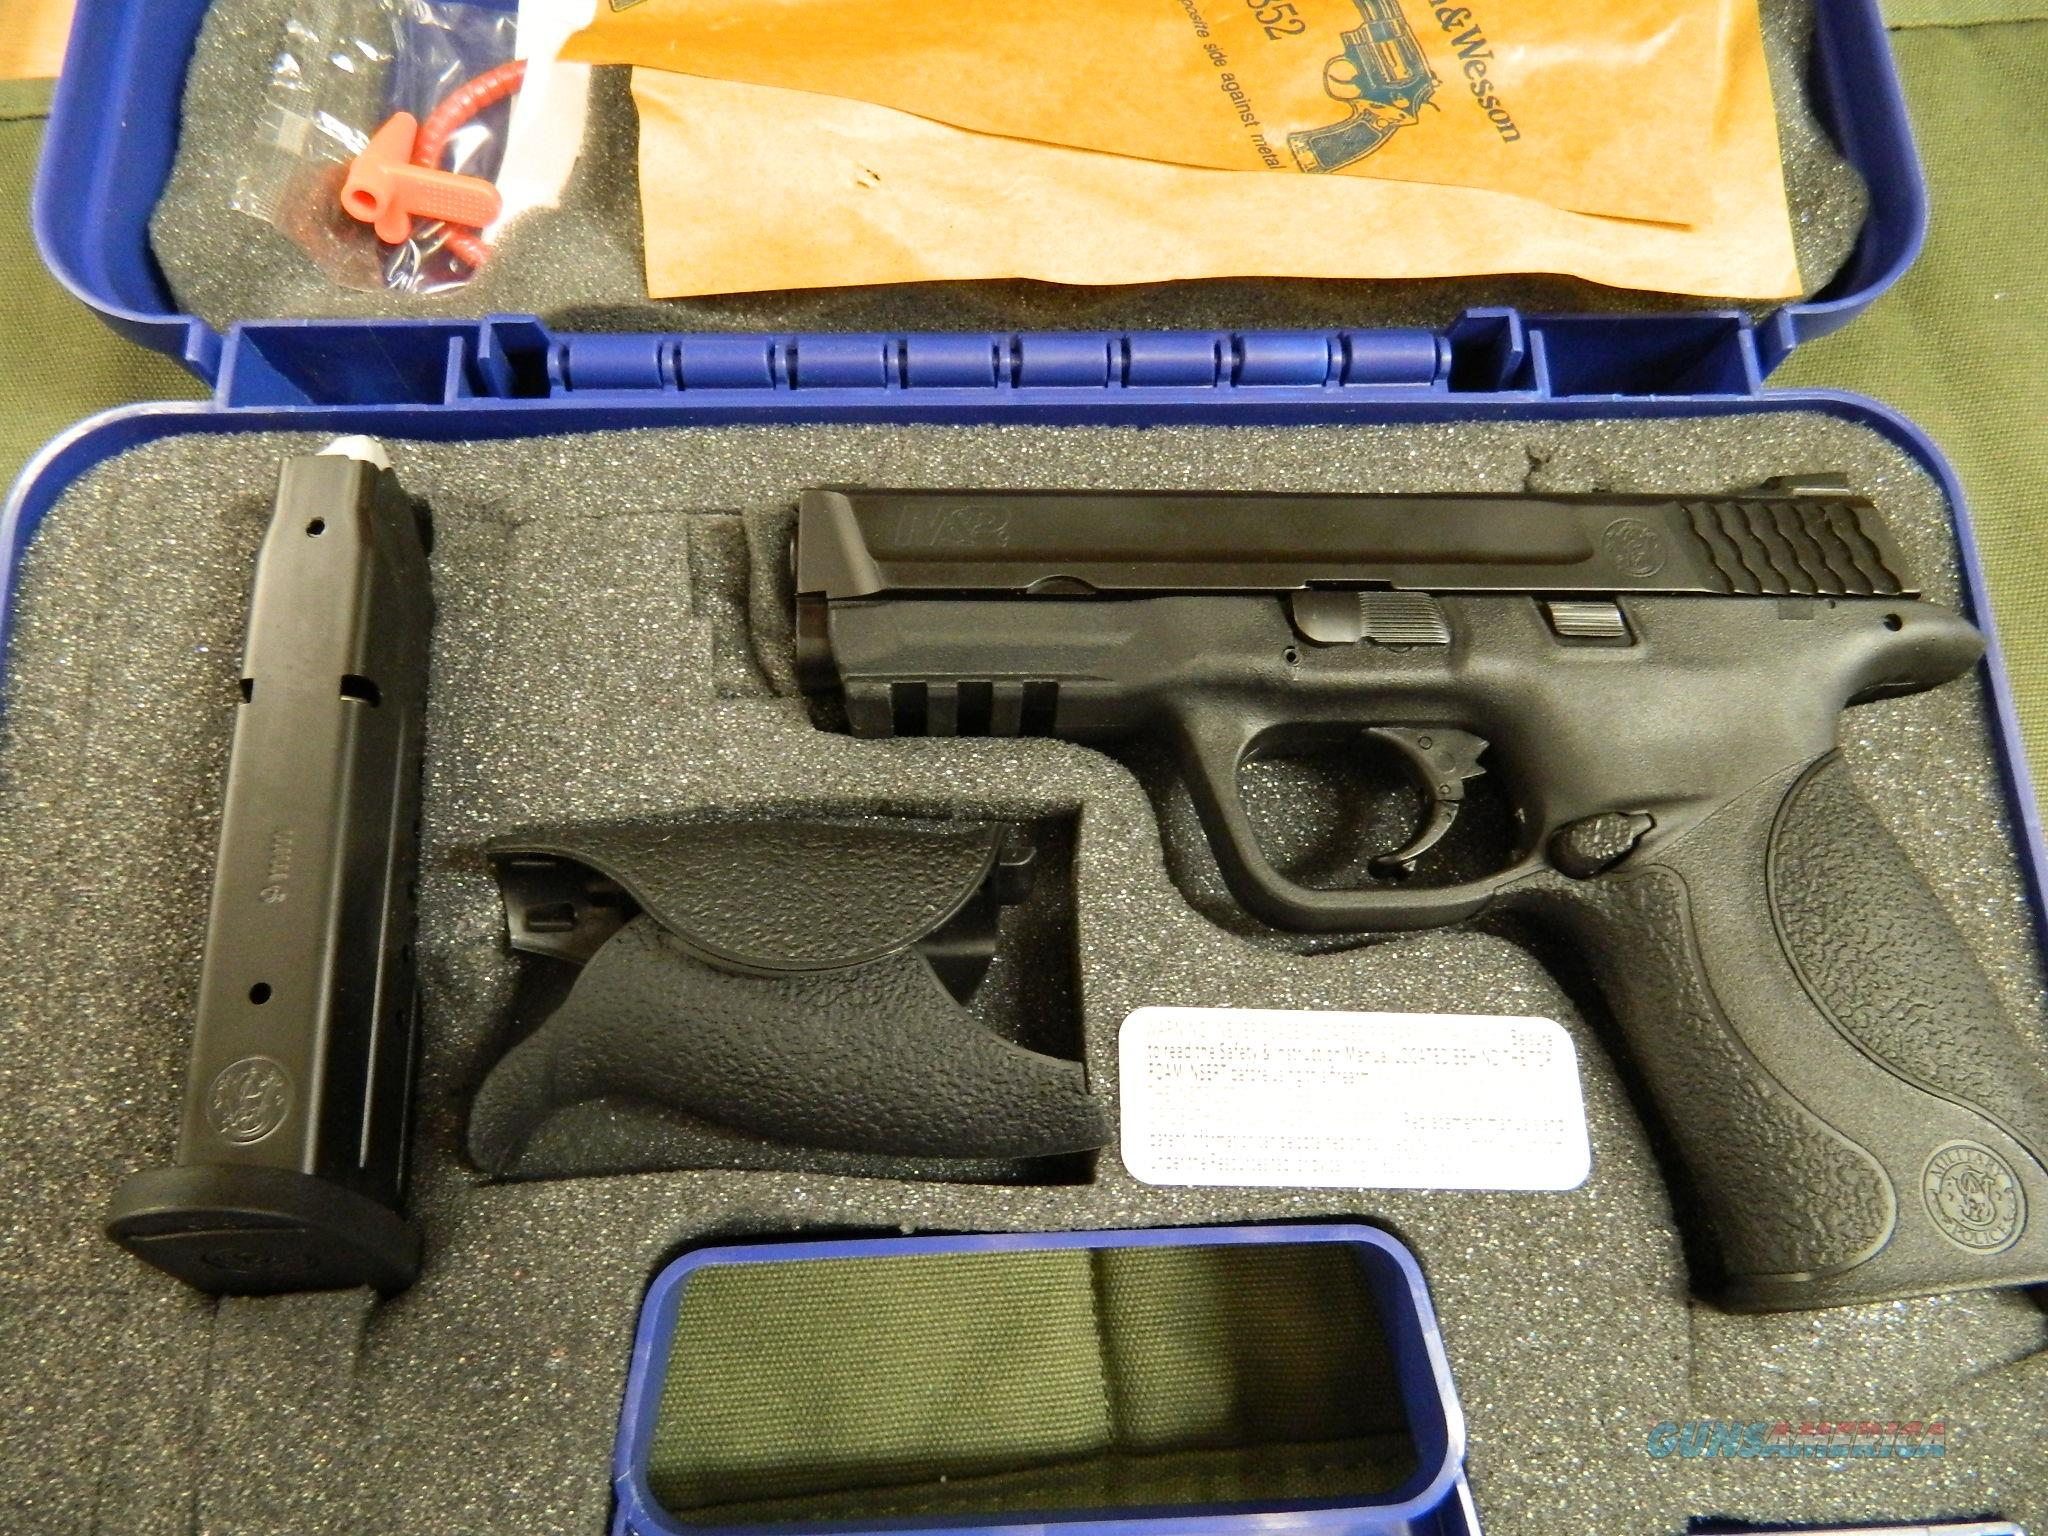 Smith & Wesson M&P9 / 9MM  NIB  Guns > Pistols > Smith & Wesson Pistols - Autos > Polymer Frame